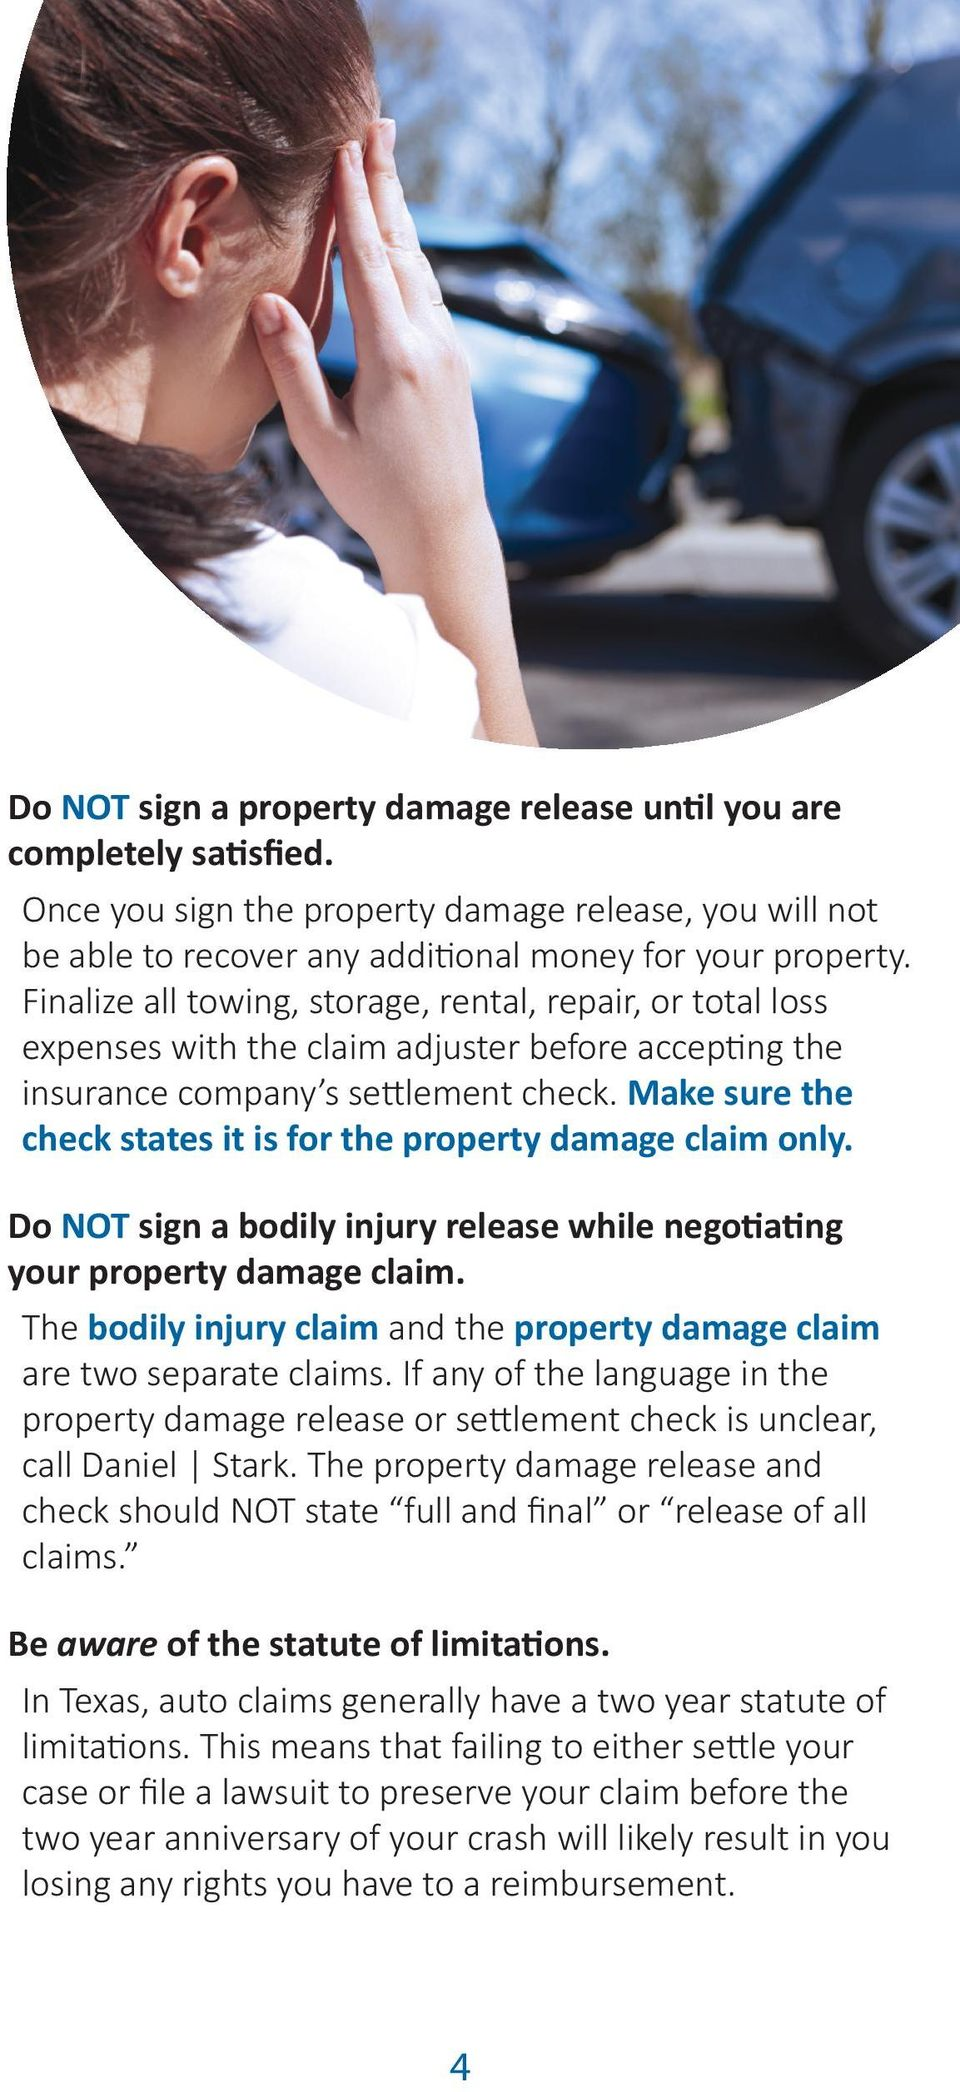 Make sure the check states it is for the property damage claim only. Do NOT sign a bodily injury release while negotiating your property damage claim.